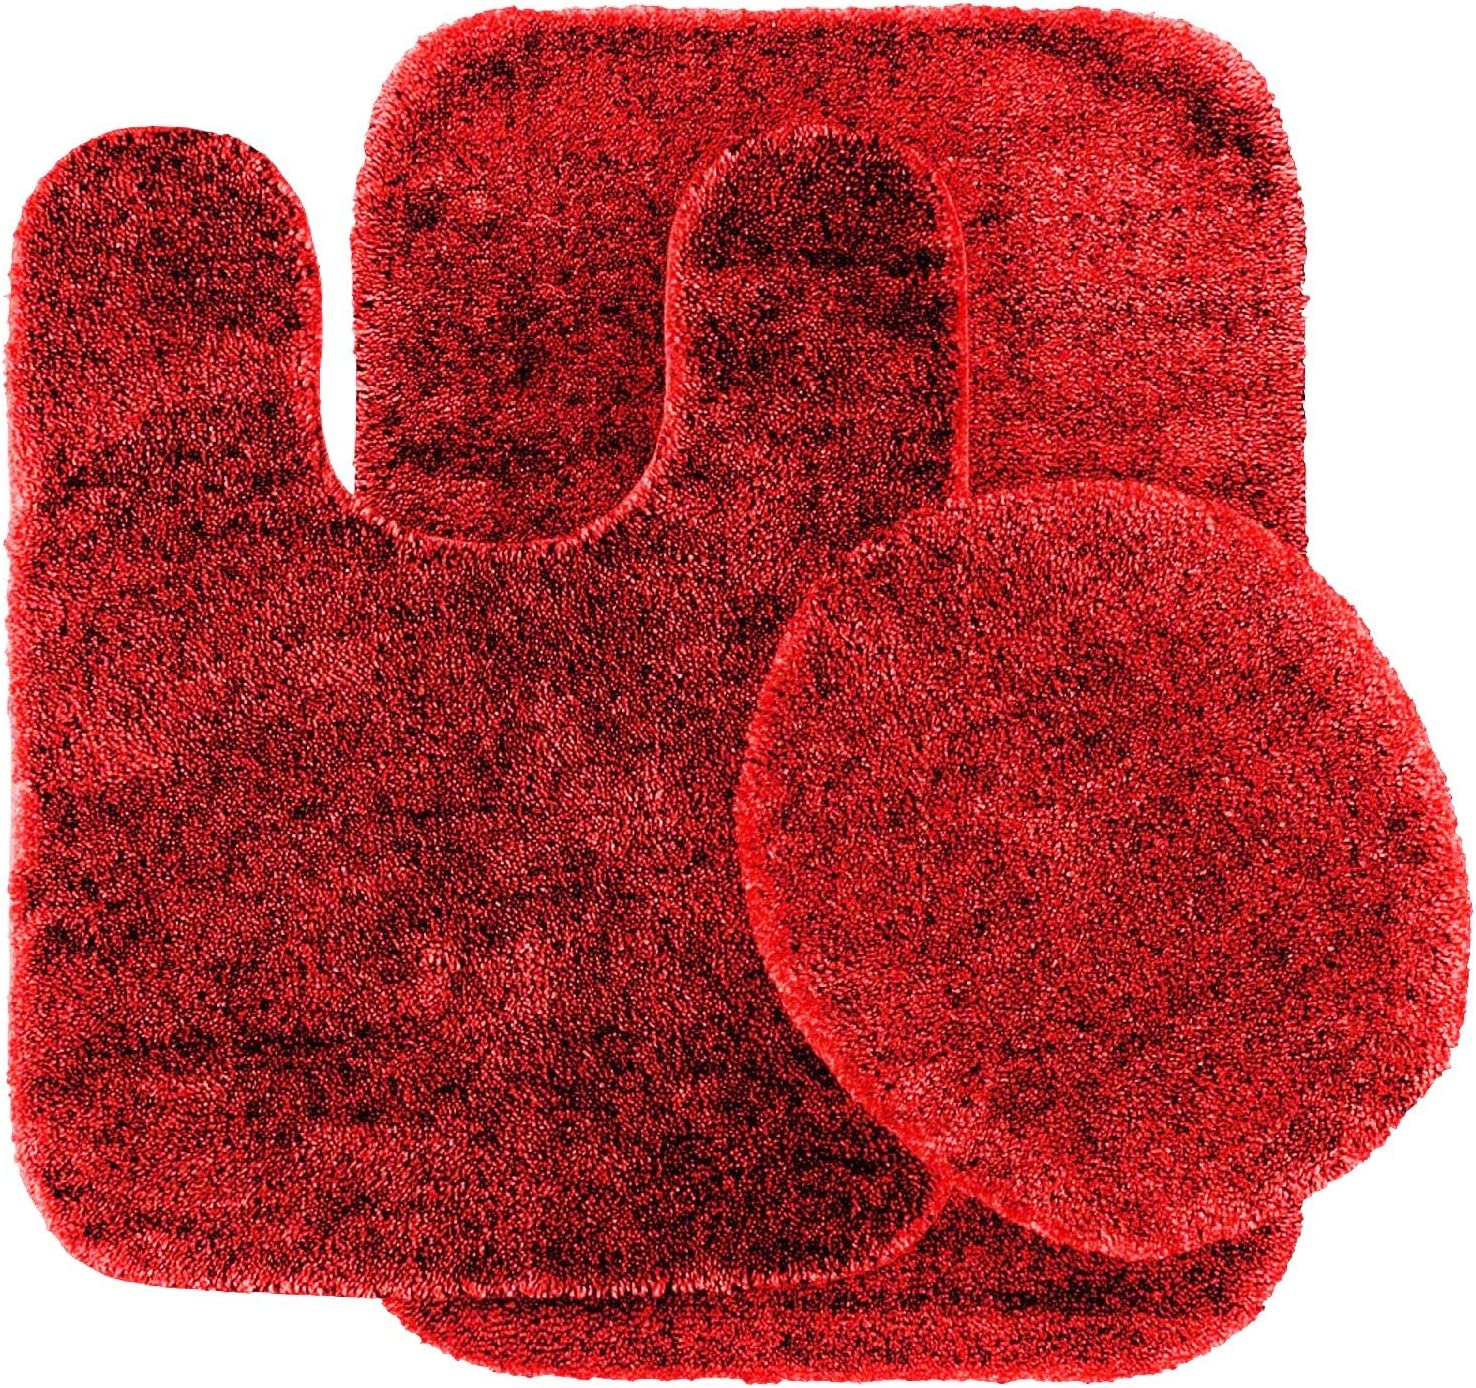 GorgeousHomeLinen 3-Piece Red #6 Bathroom Set Bath Mat, Contour, and Toilet Lid Cover, with Rubber Backing